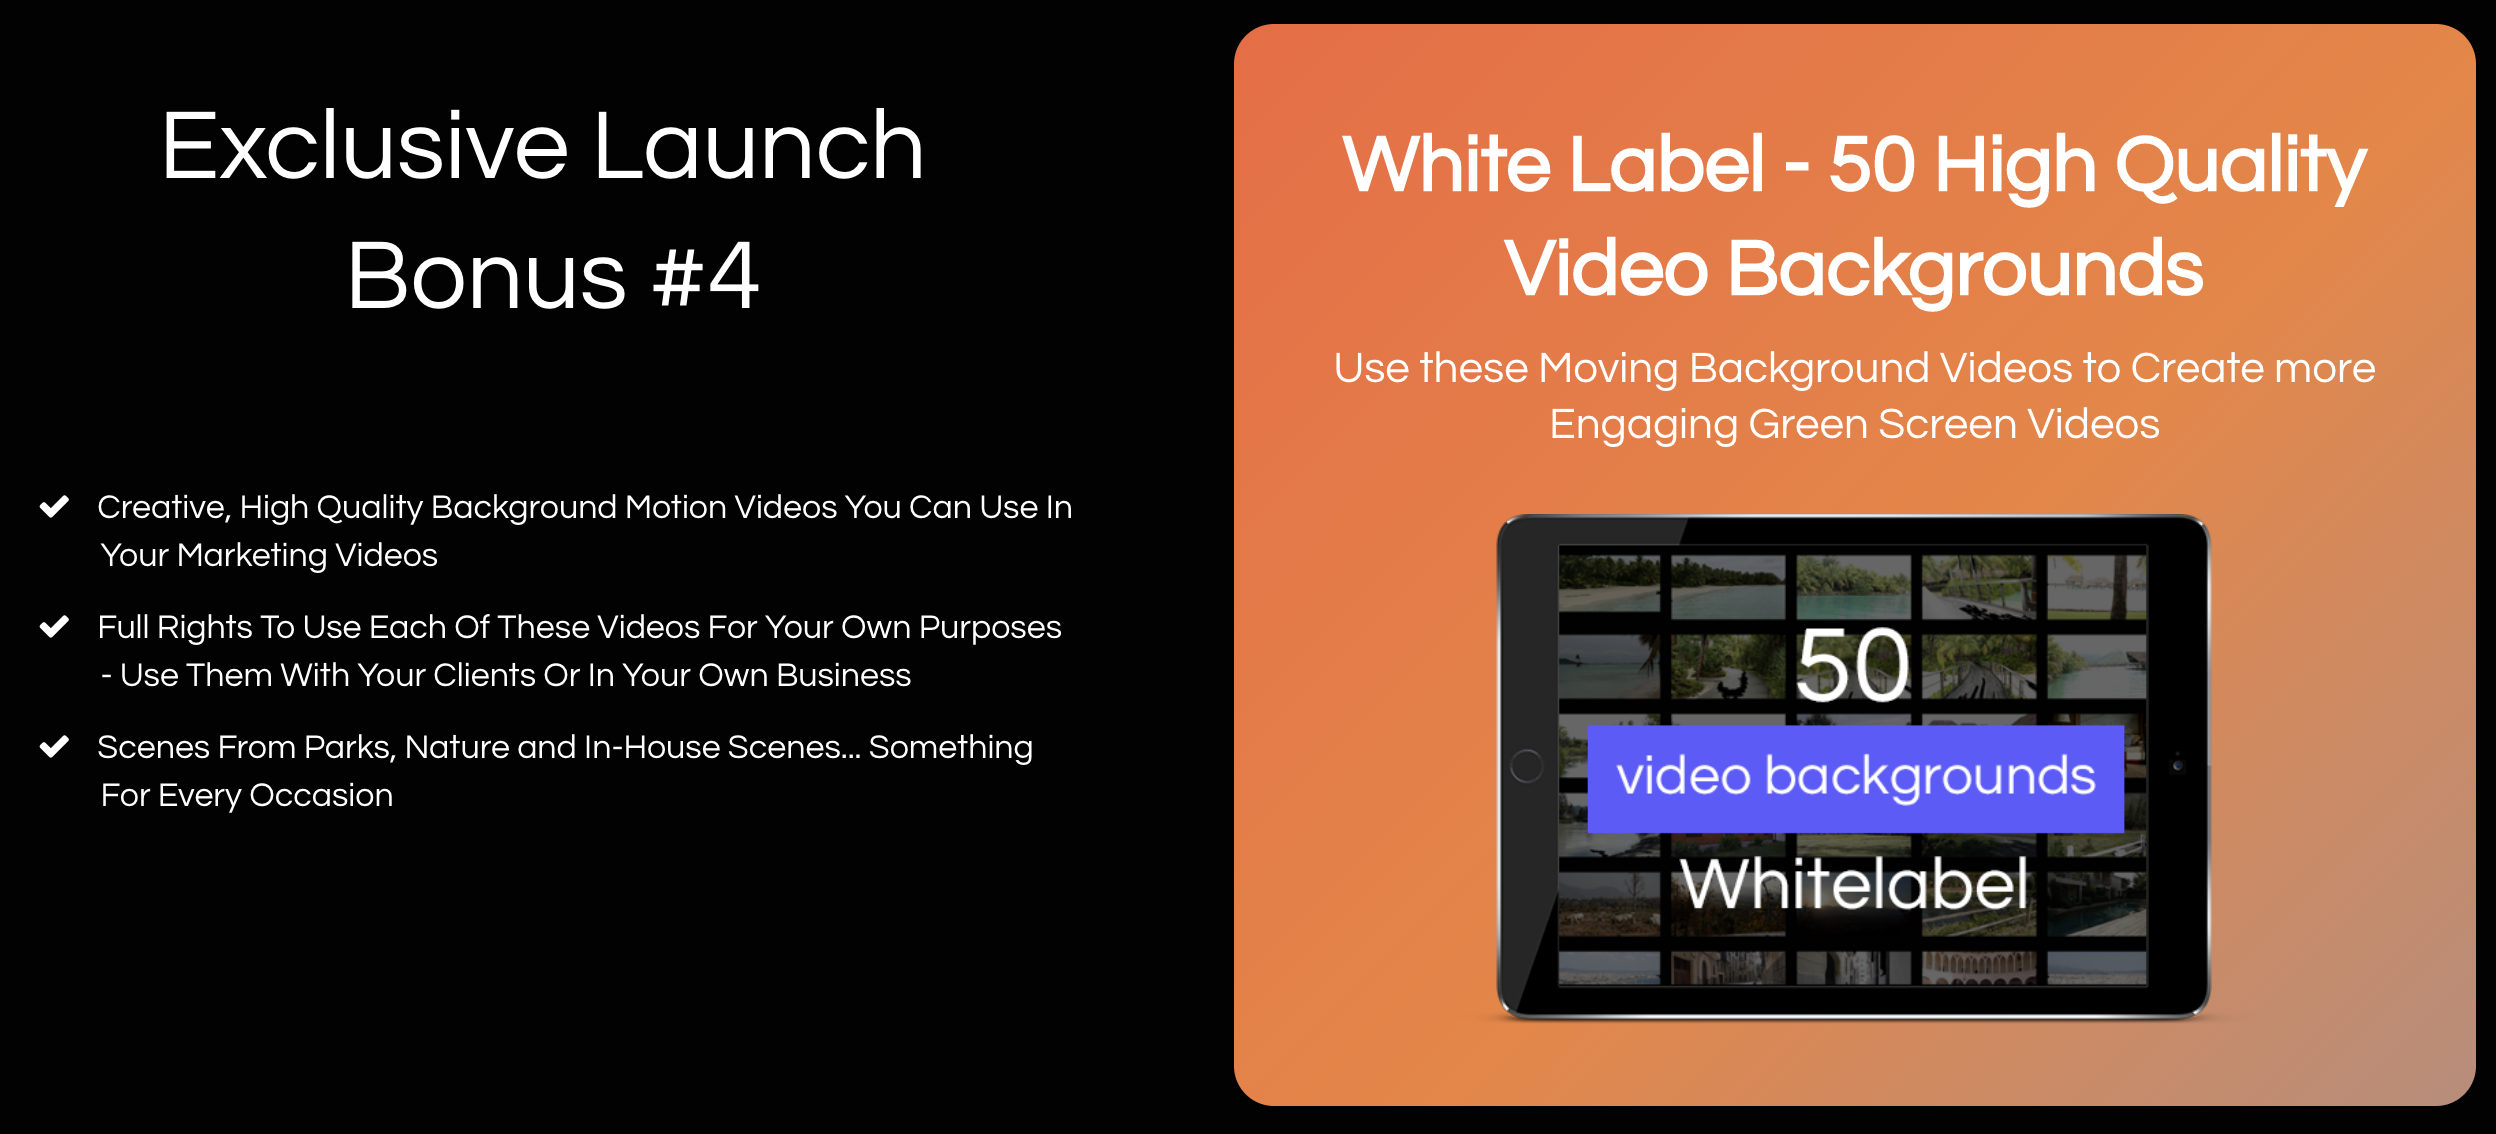 How to Create Gorgeous, Dynamic & Creative Videos in Just 3 Easy Steps 15